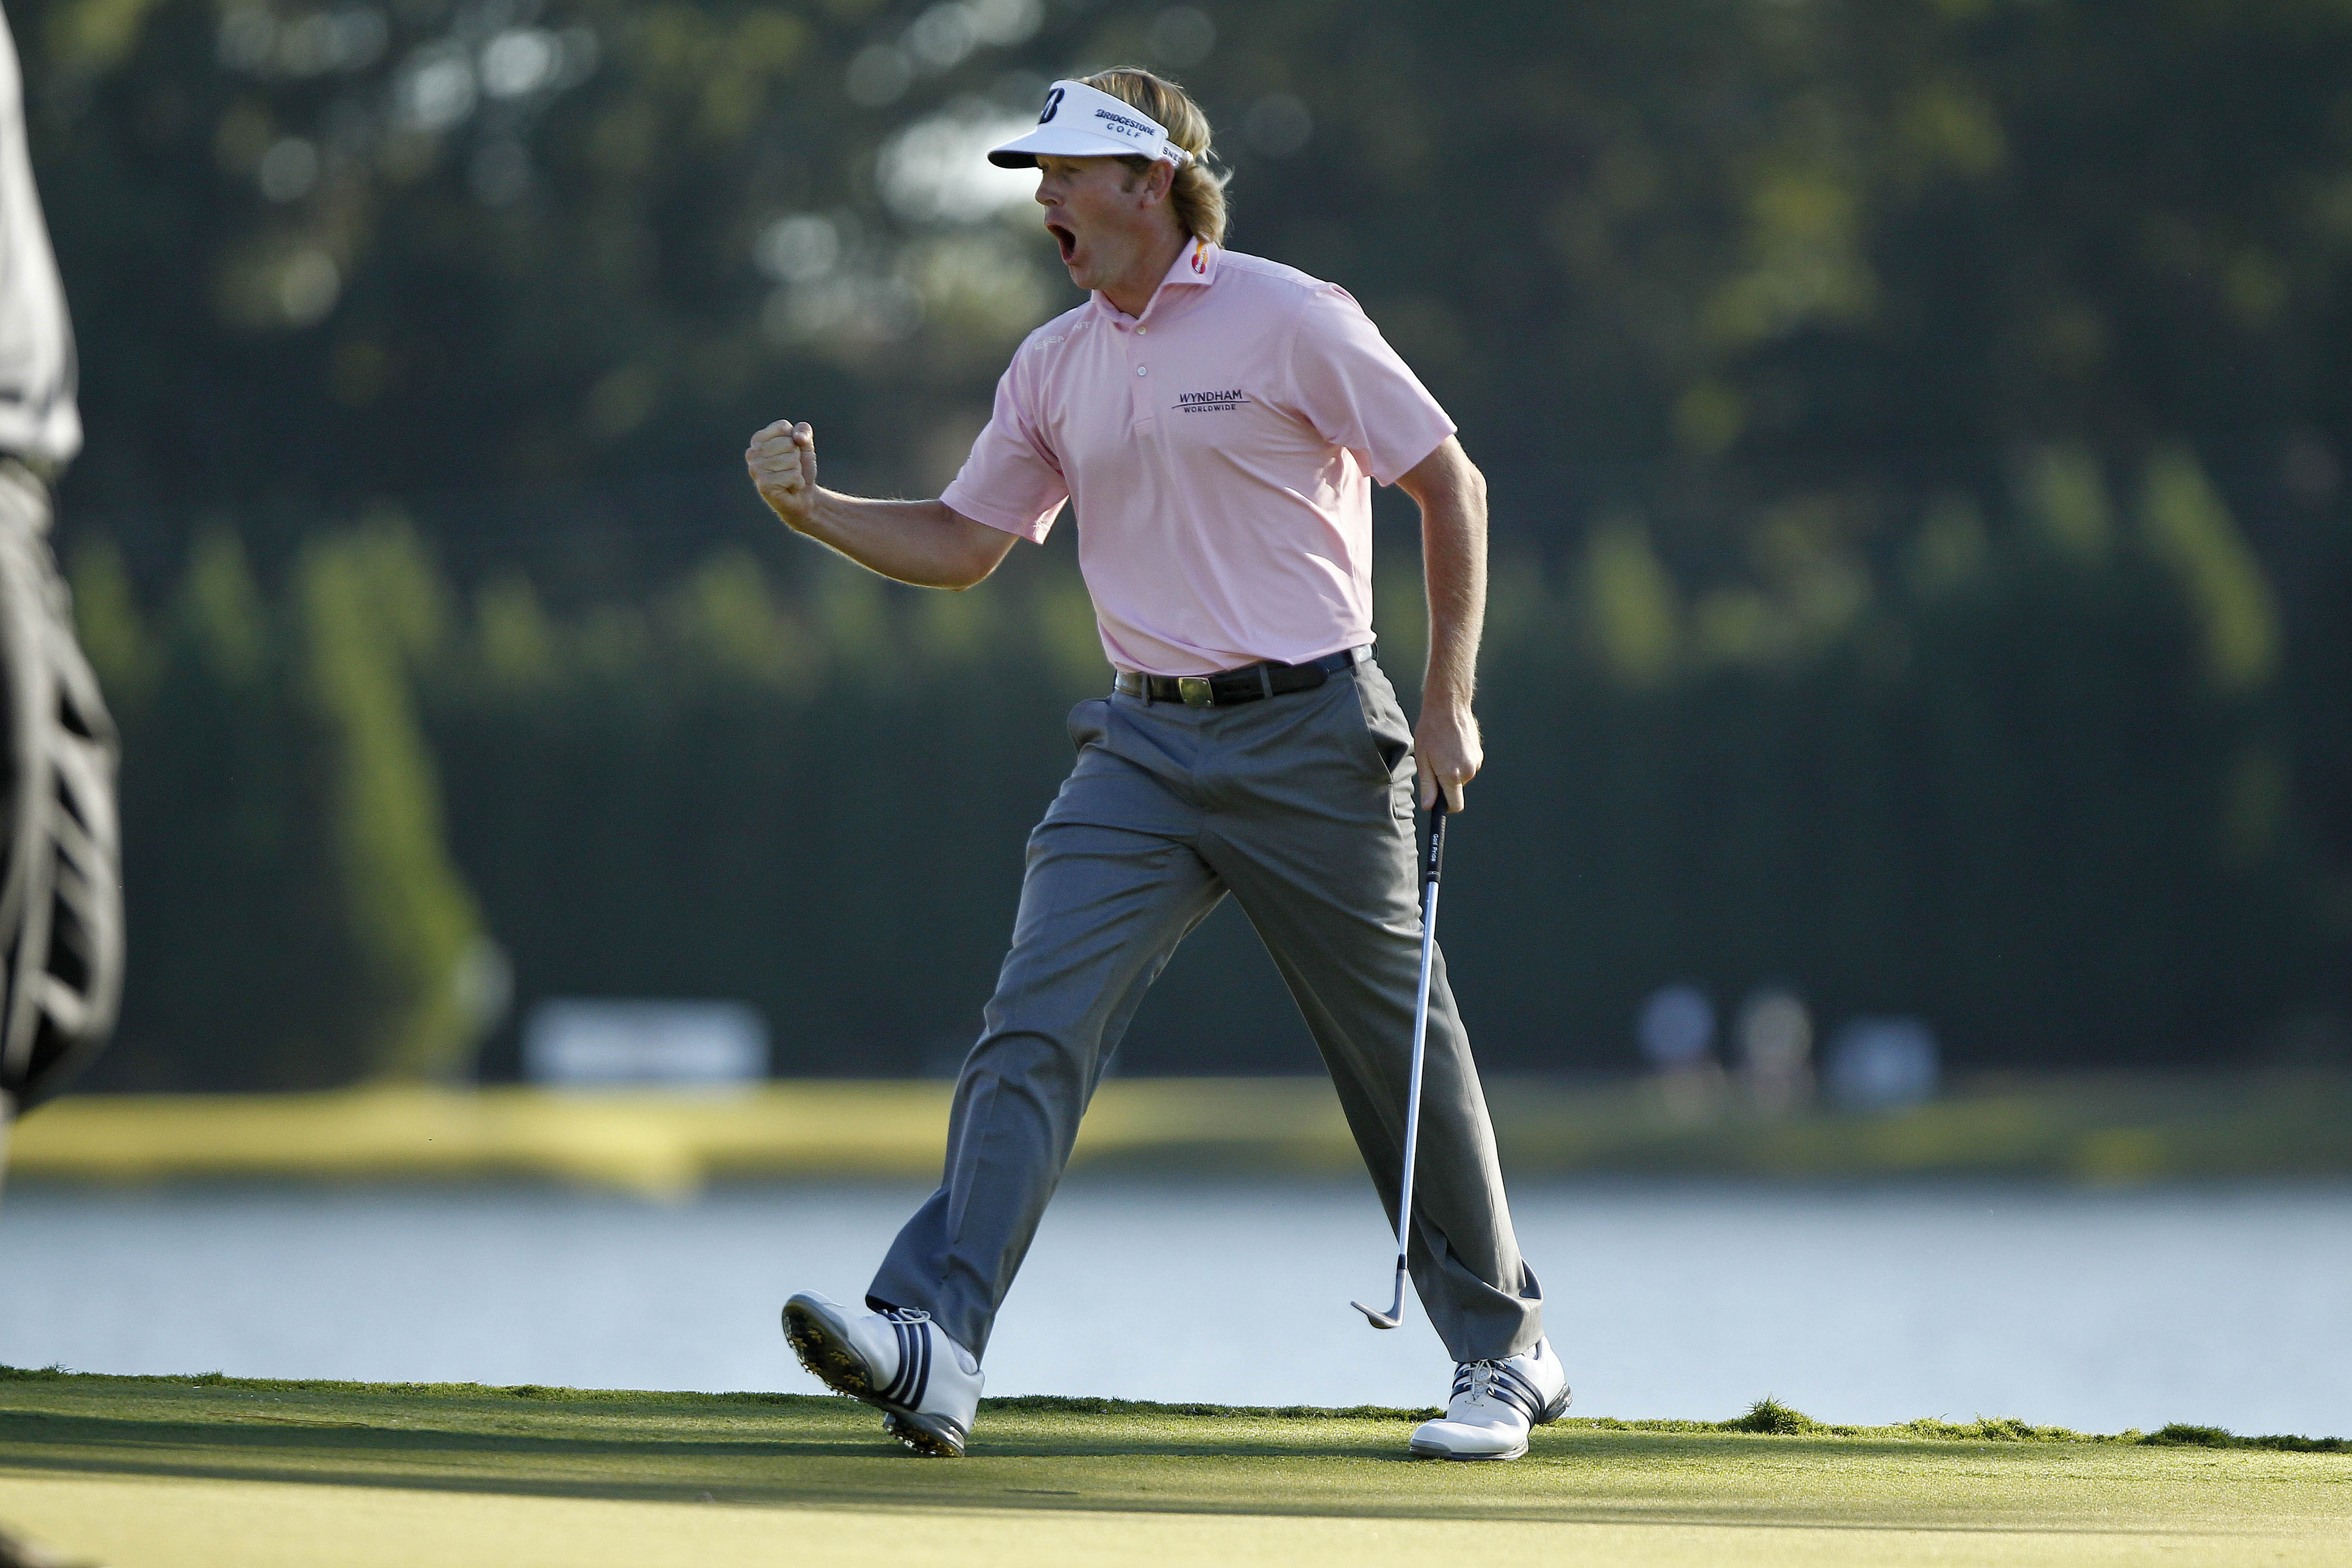 Sep 23, 2012; Atlanta, GA, USA; Brandt Snedeker (USA) celebrates hitting a birdie on the 17th hole during the final round of the TOUR Championship at East Lake Golf Club. Mandatory Credit: Debby Wong-US PRESSWIRE